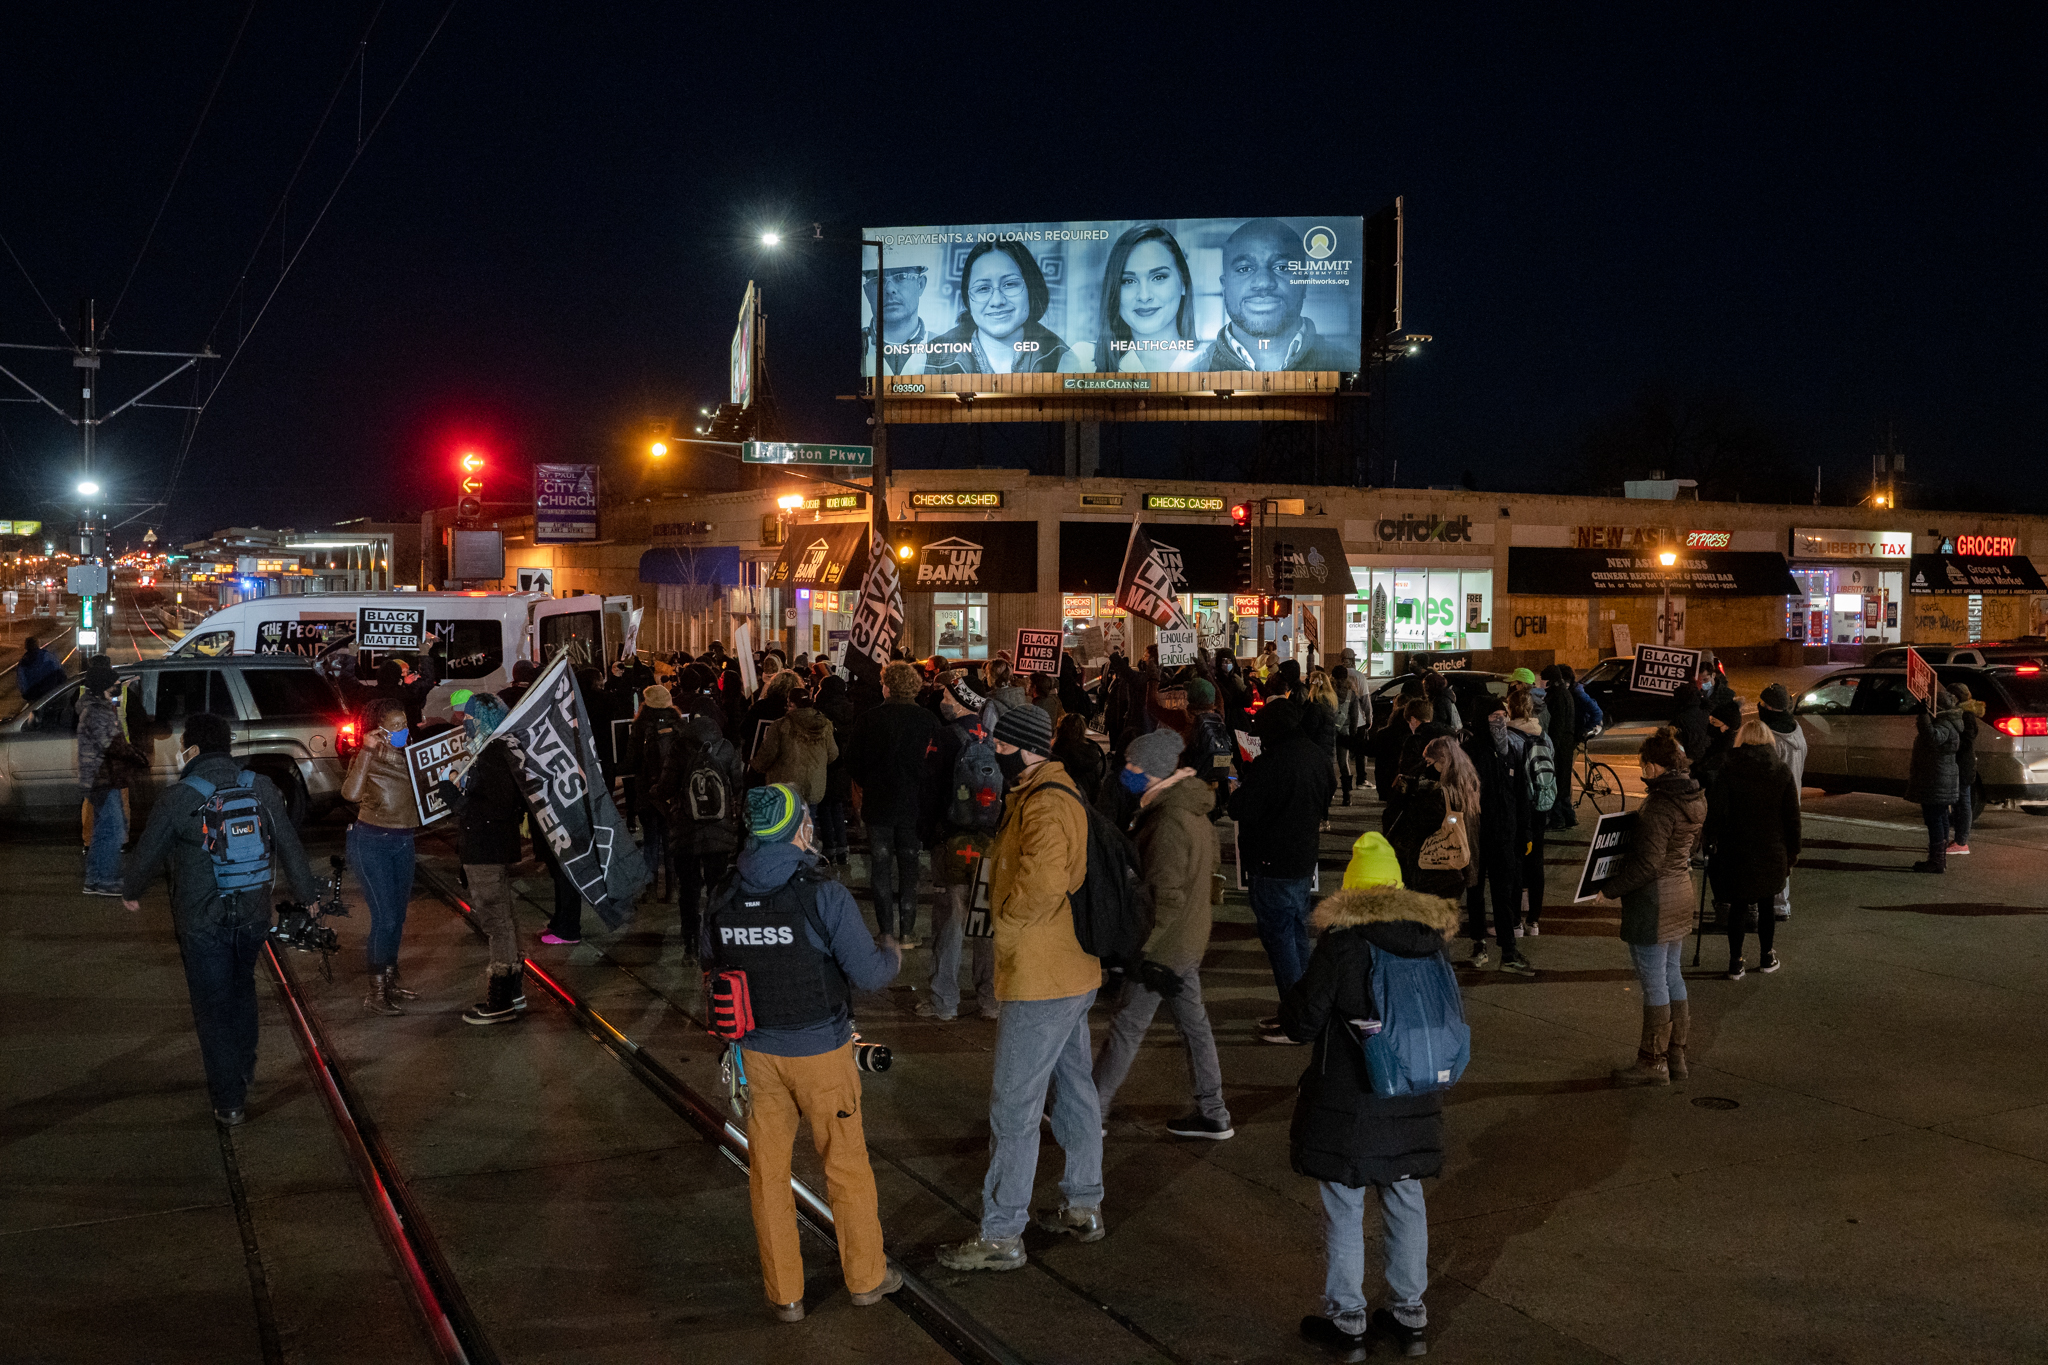 St. Paul Continues Protests After Black Man Shot by Police